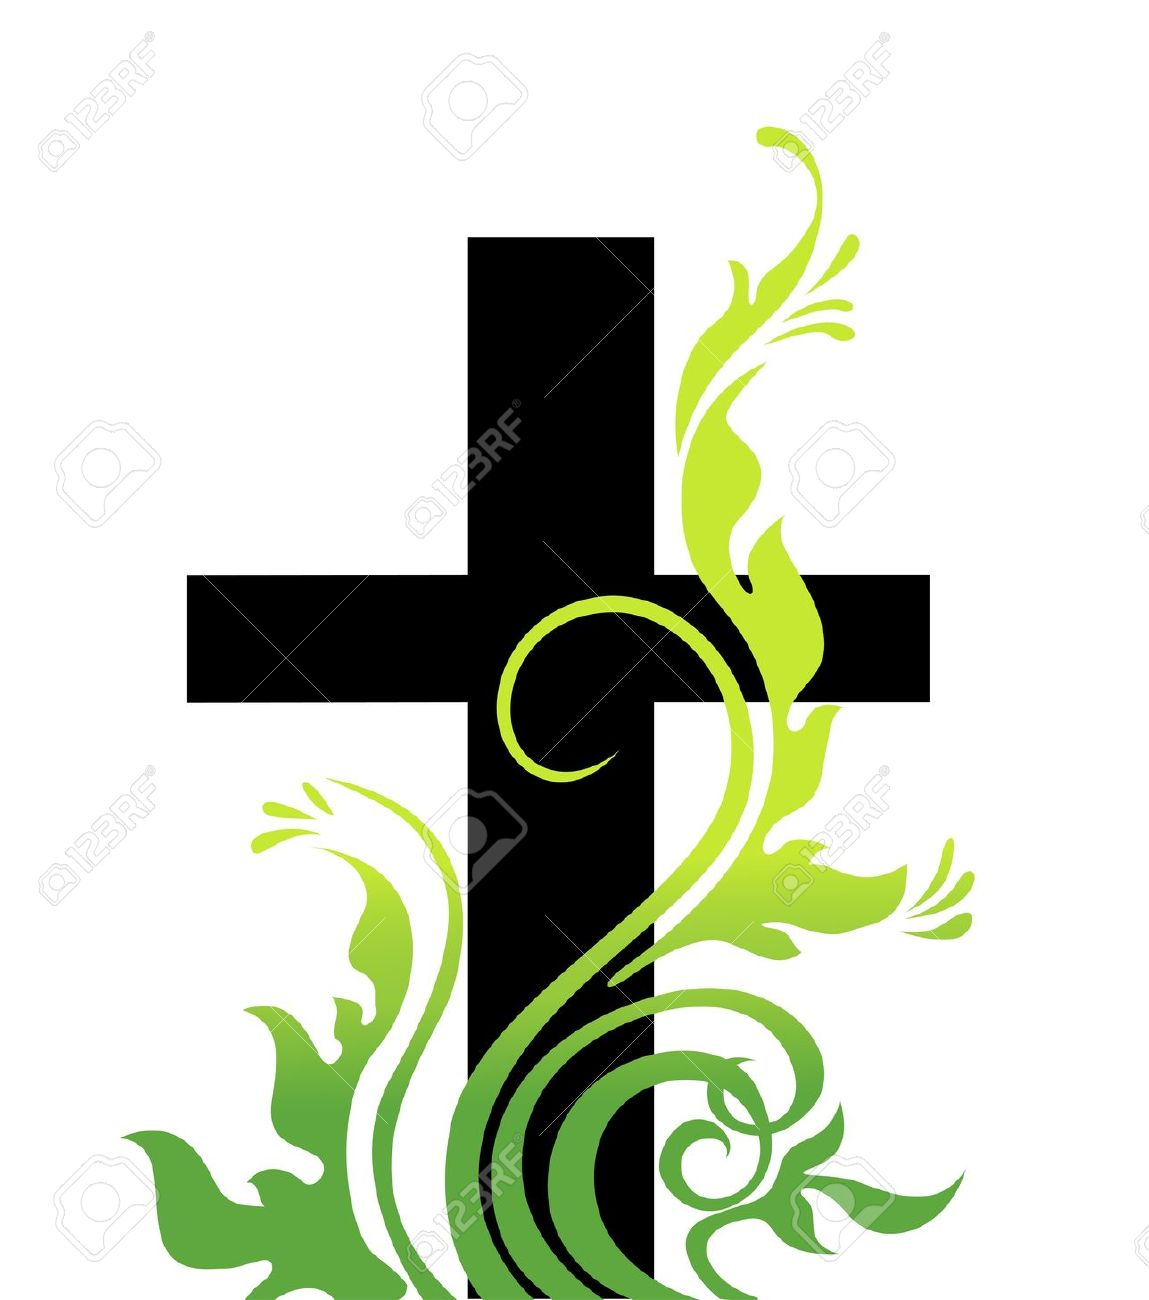 Easter cross images free download best easter cross images on 1149x1300 easter cross vector happy easter 2017 buycottarizona Images